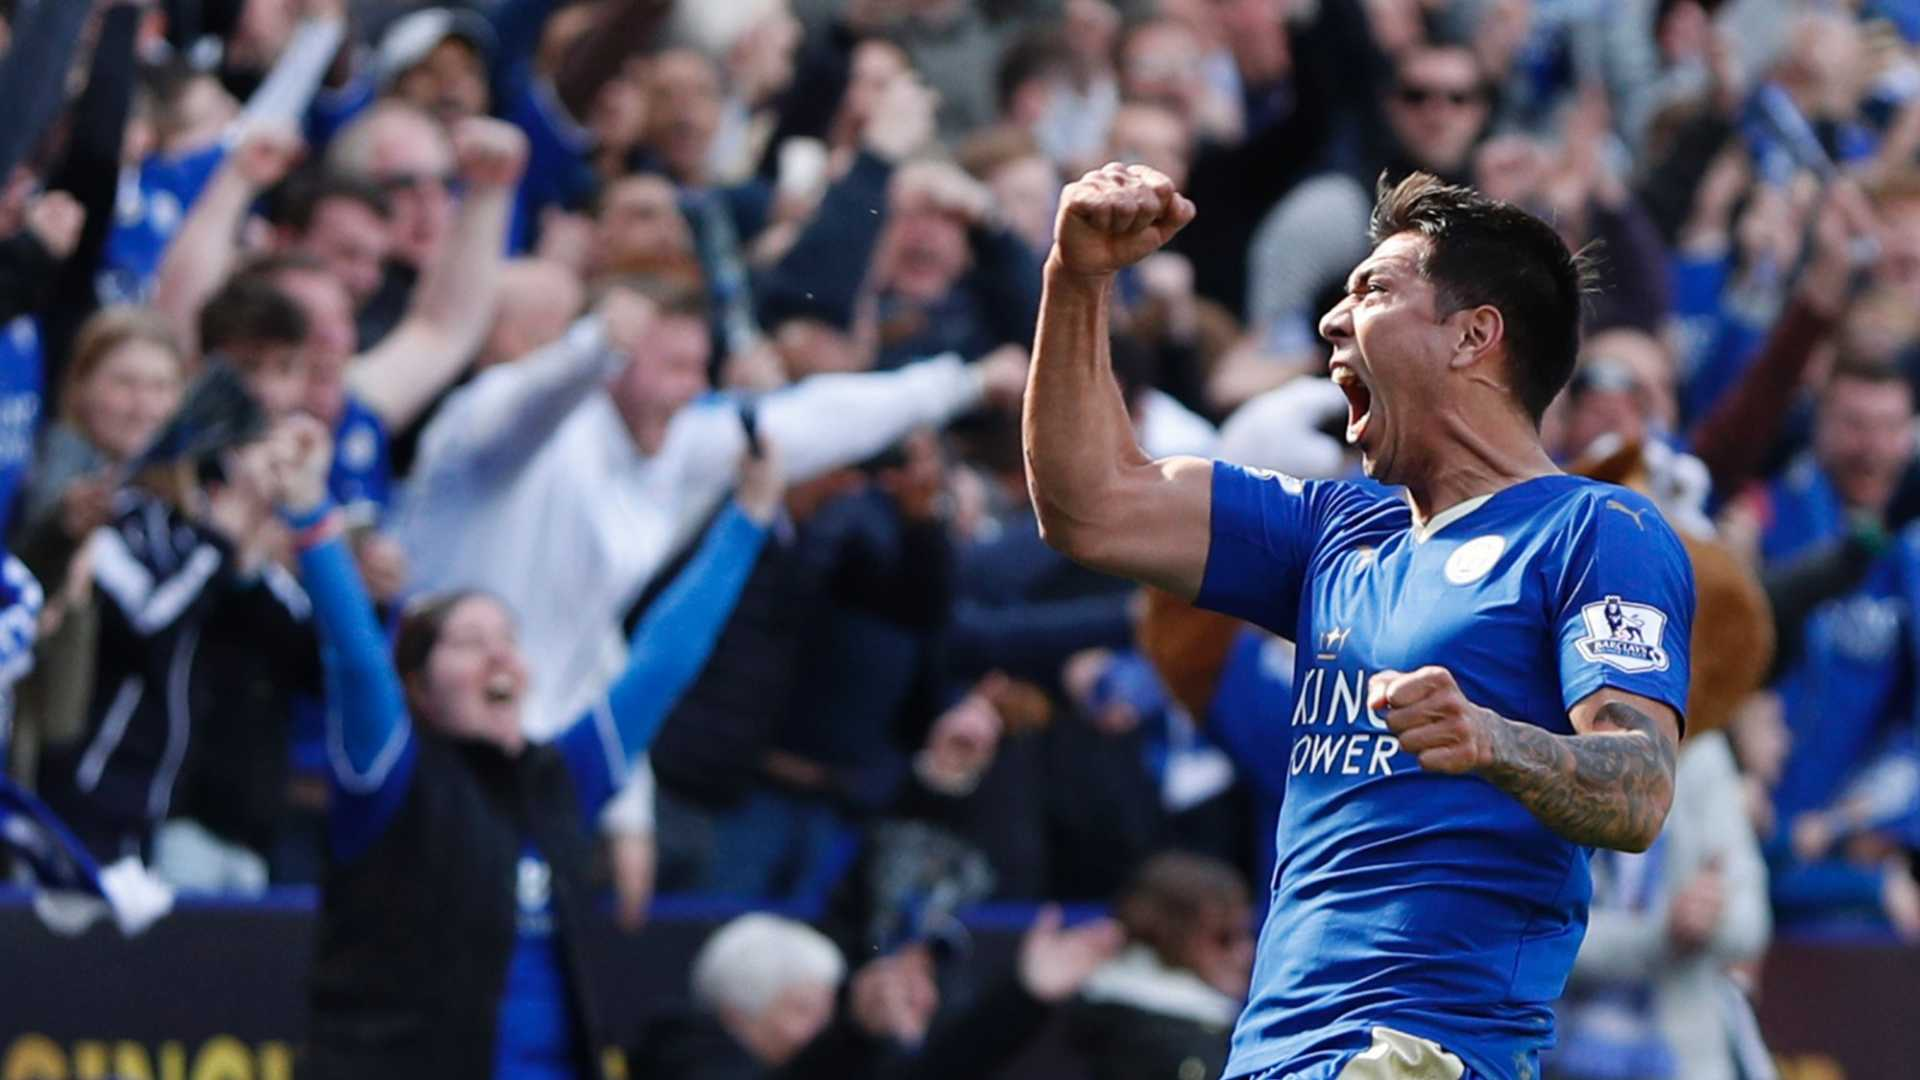 Leonardo Ulloa, an Argentinian who came to Leicester and won it all.